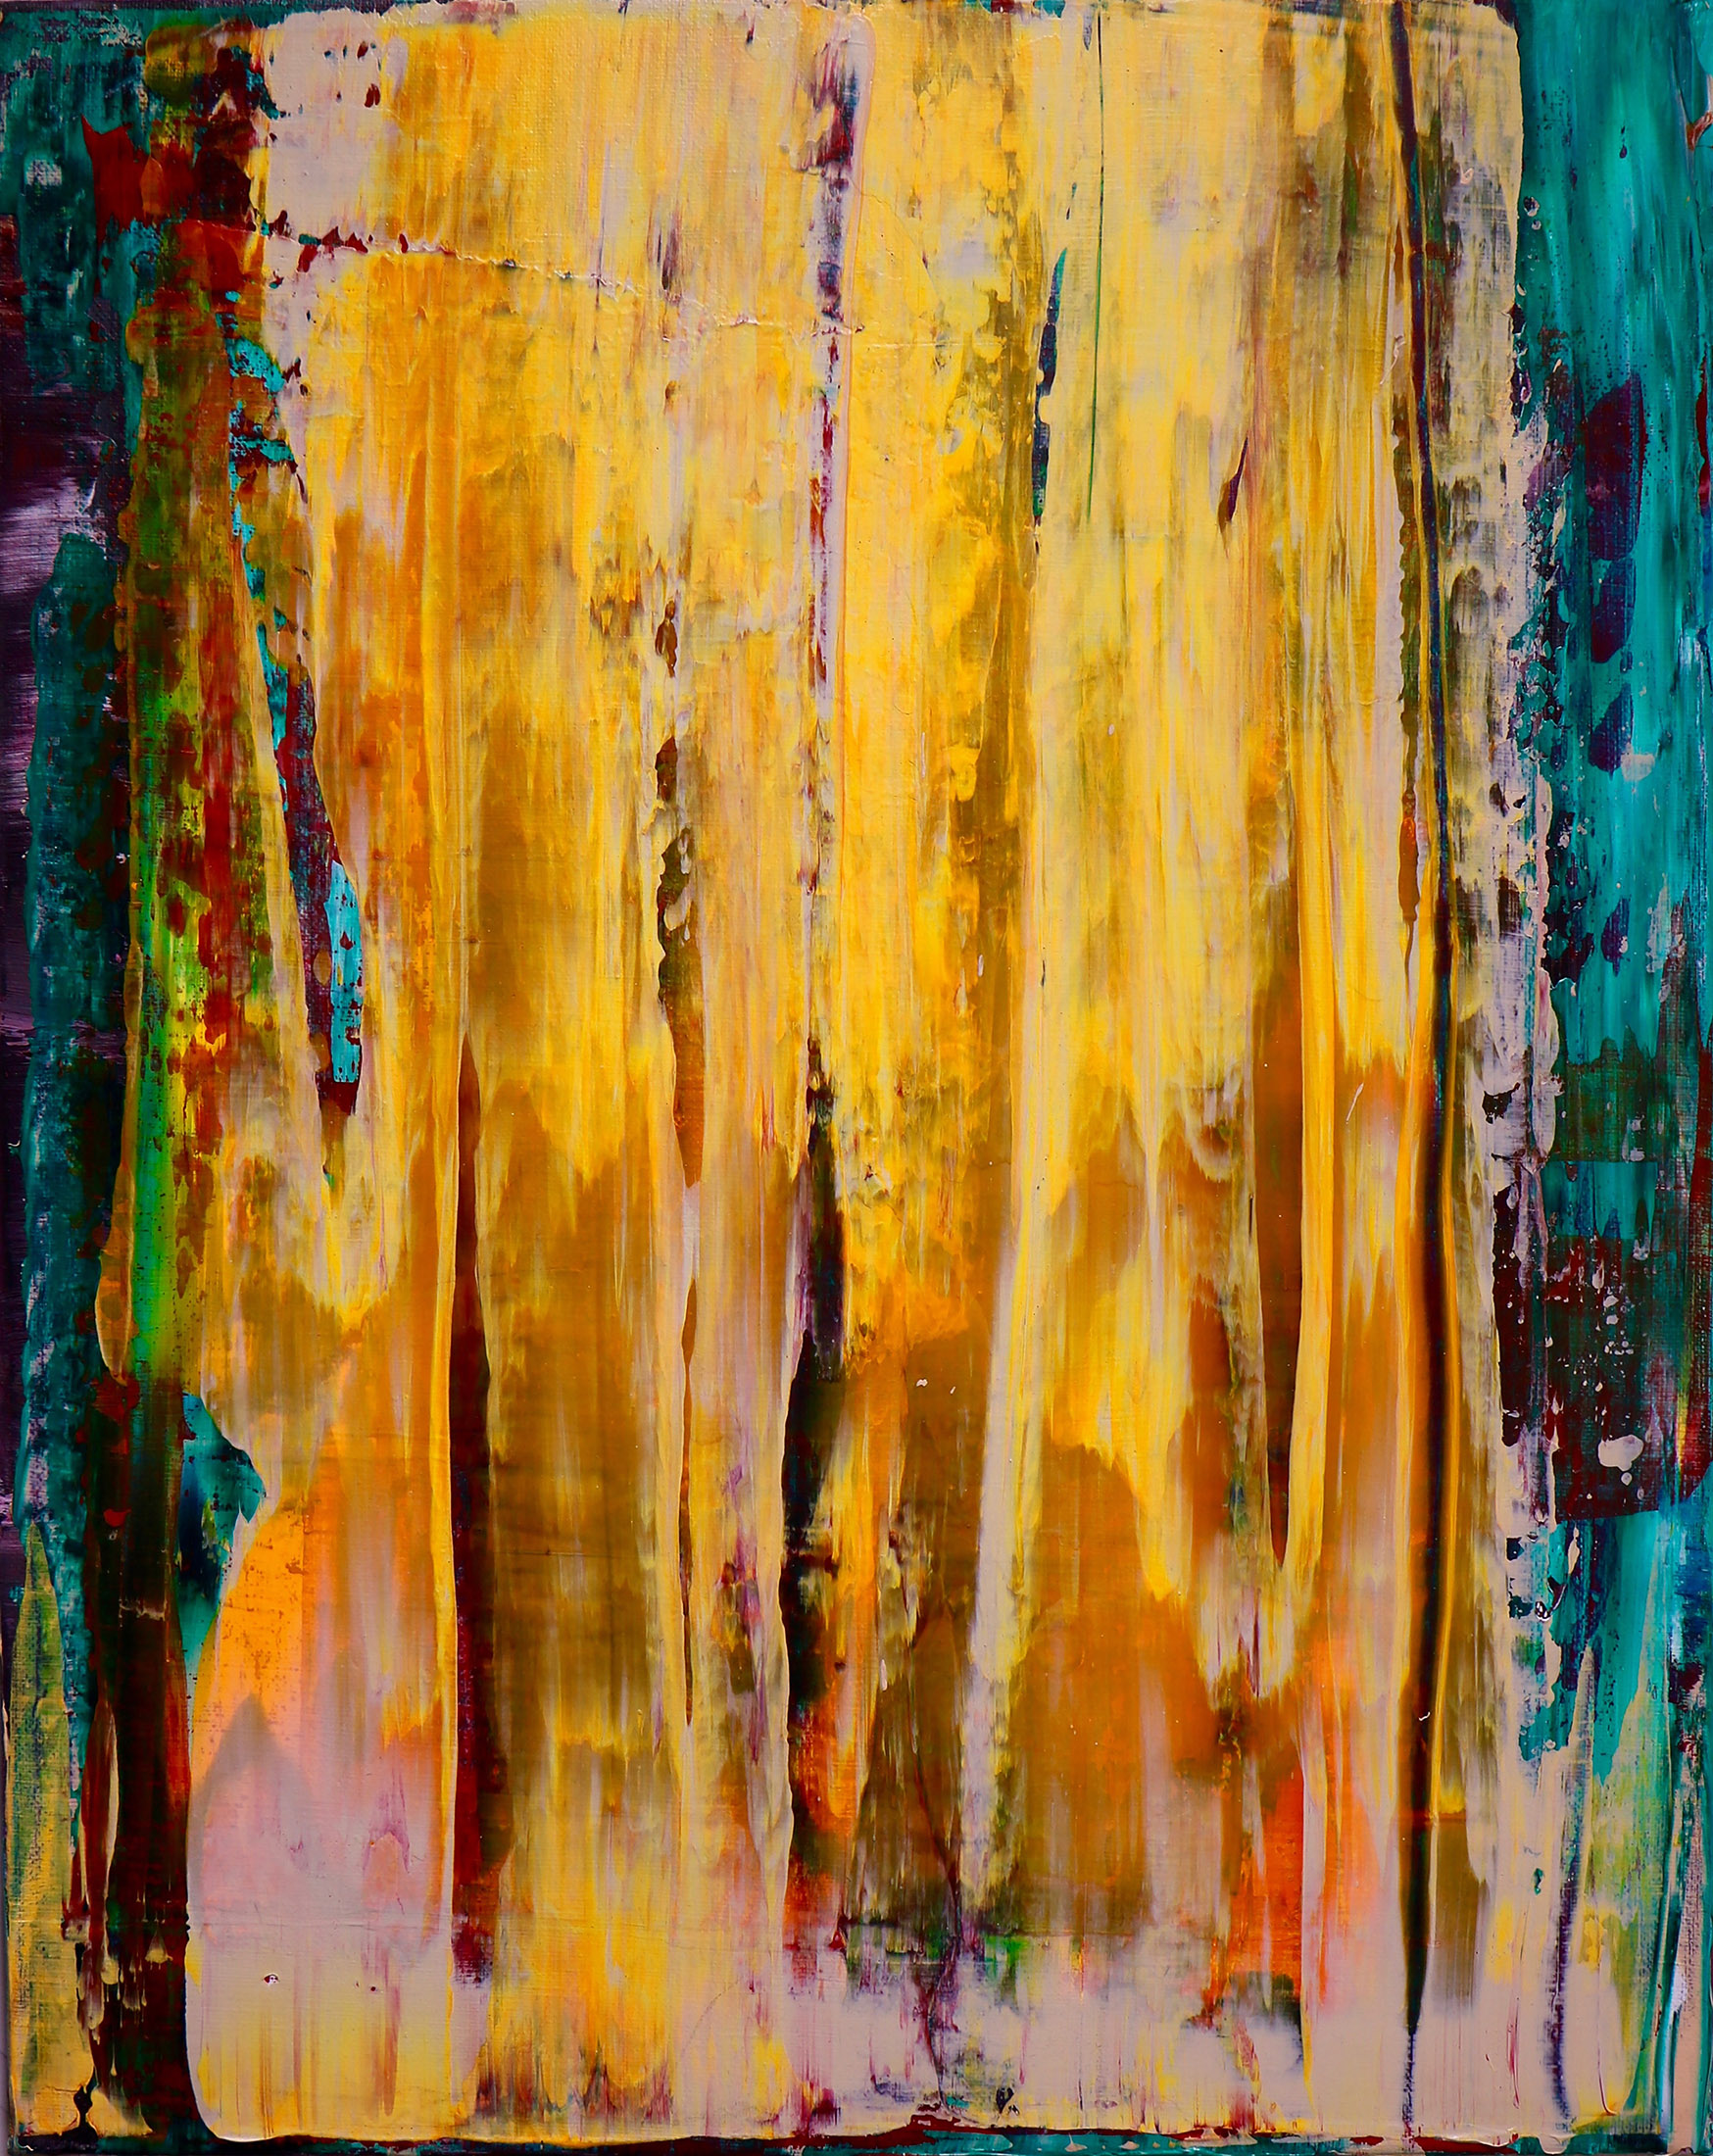 contemporary art Archives - Page 6 of 13 - ABSTRACT ART - NESTOR ...